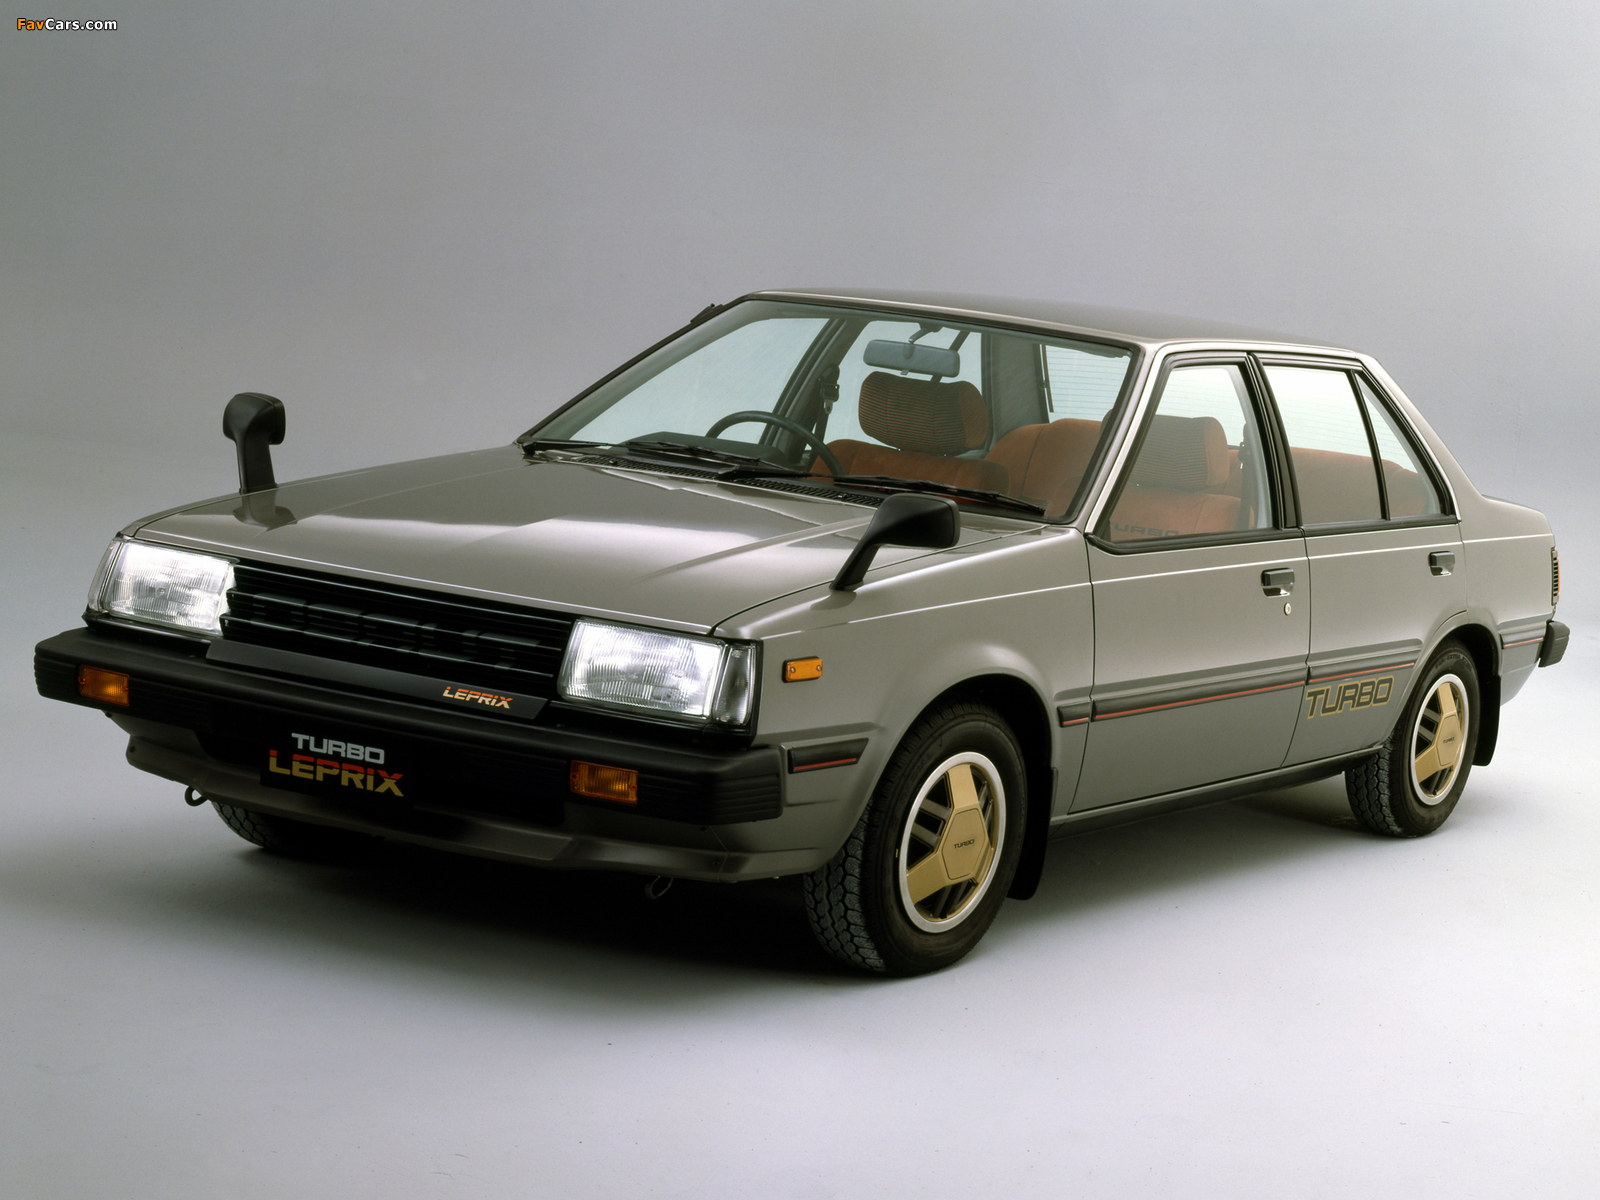 Pictures Of Nissan Sunny Turbo Leprix Sedan B11 1982 85